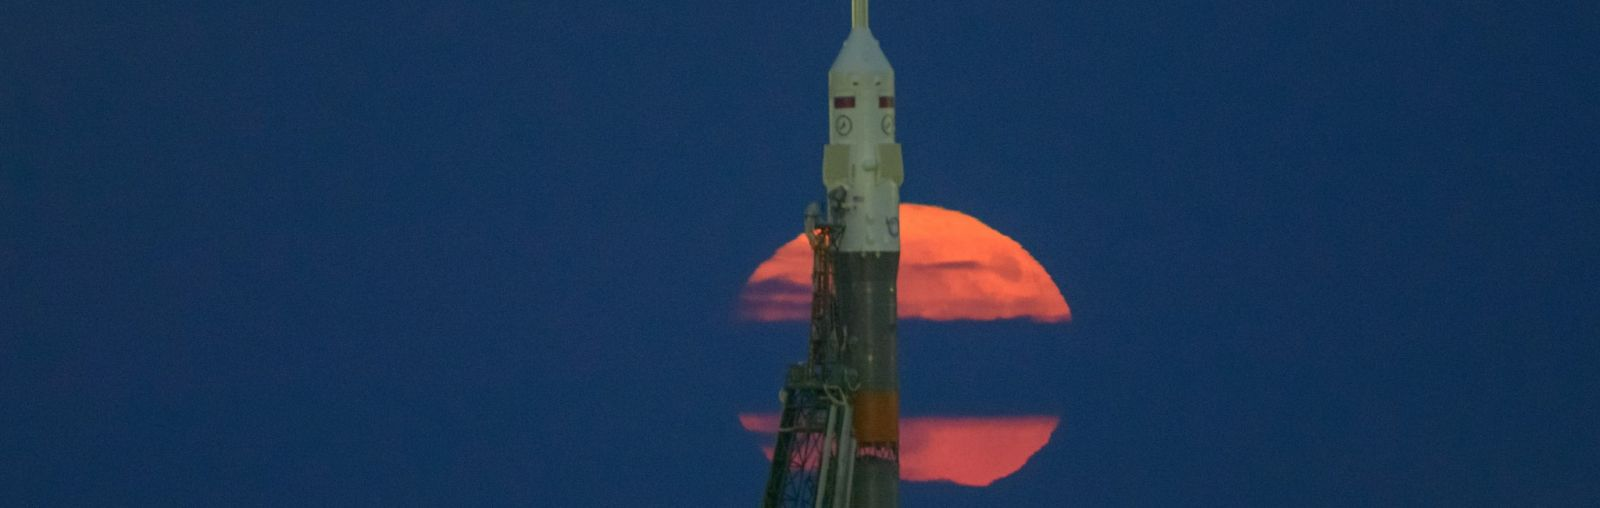 Soyuz Super Moon